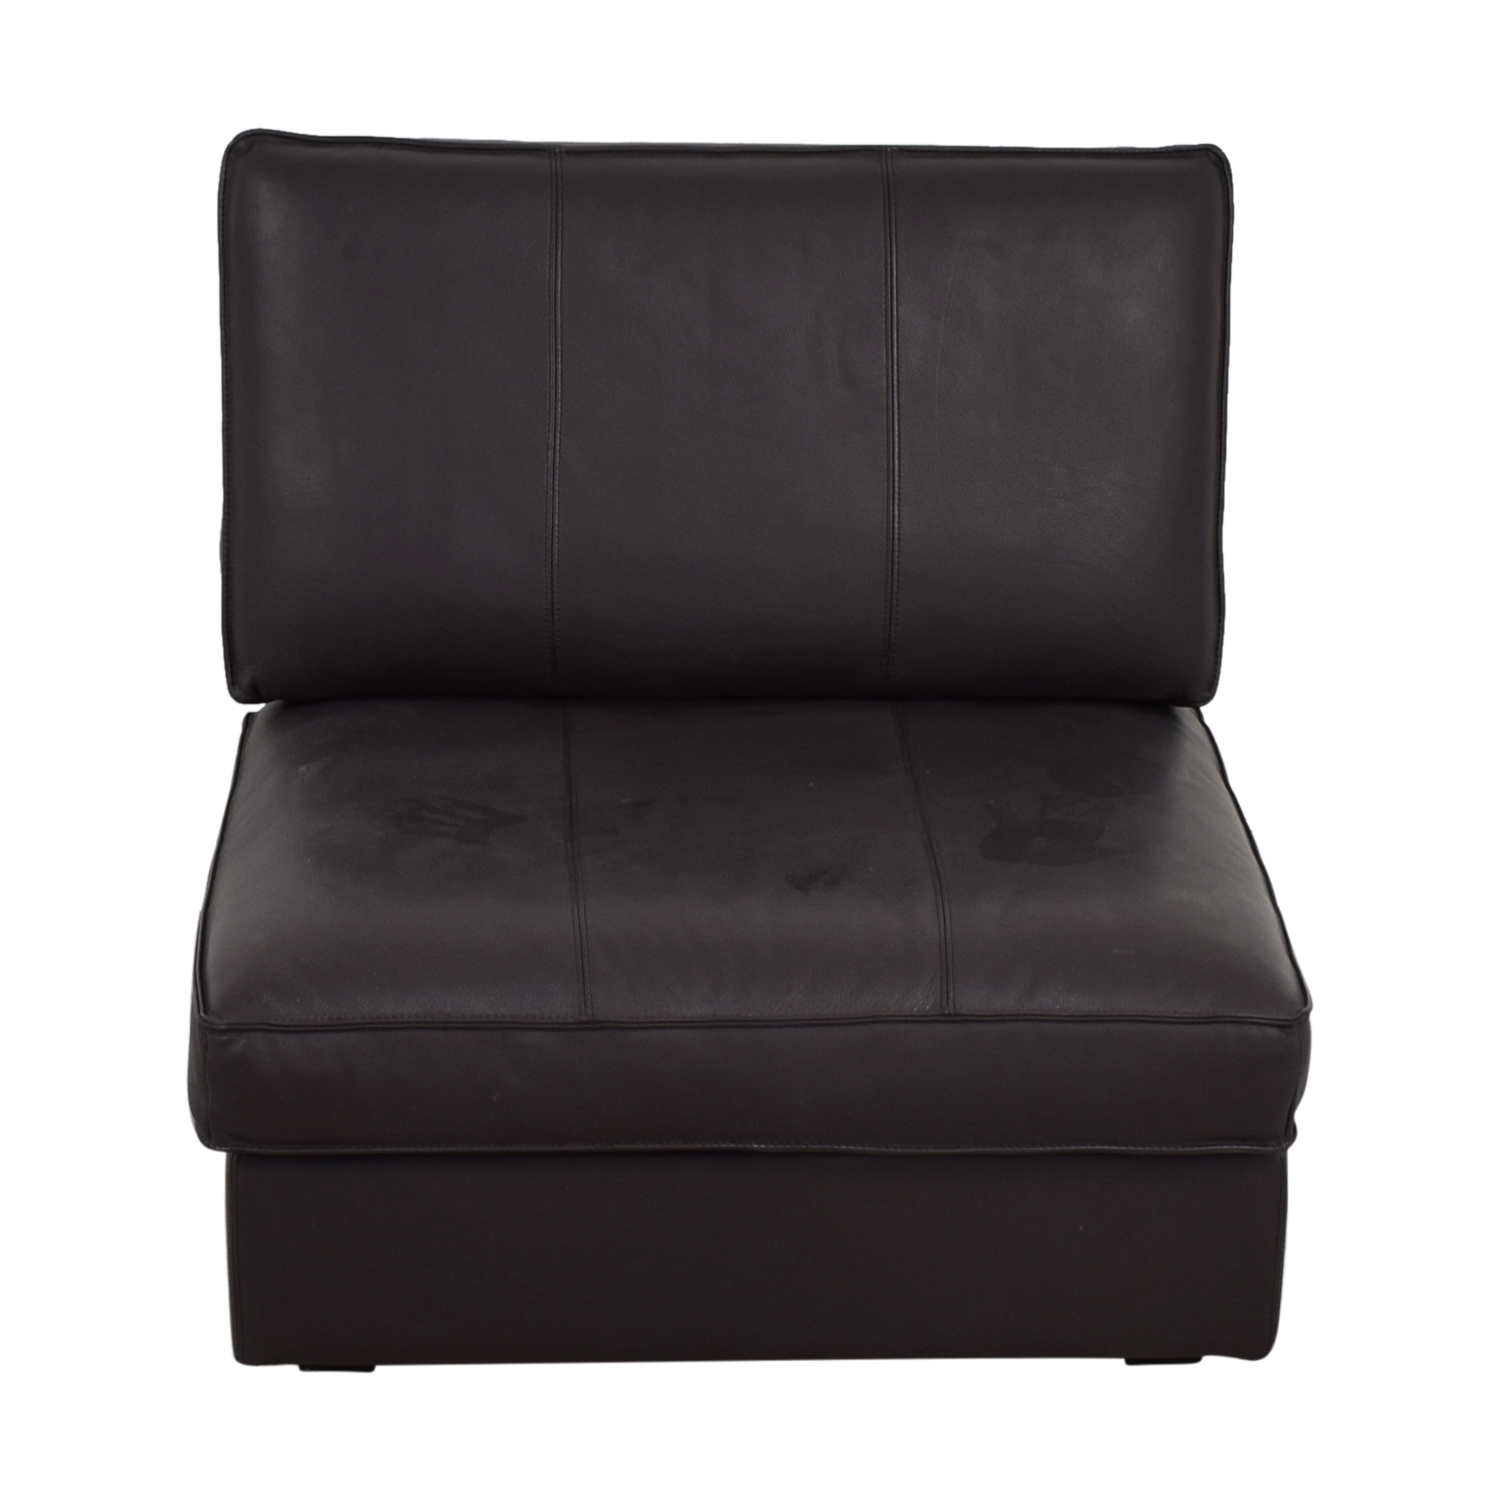 IKEA IKEA Brown Leather Accent Chair discount